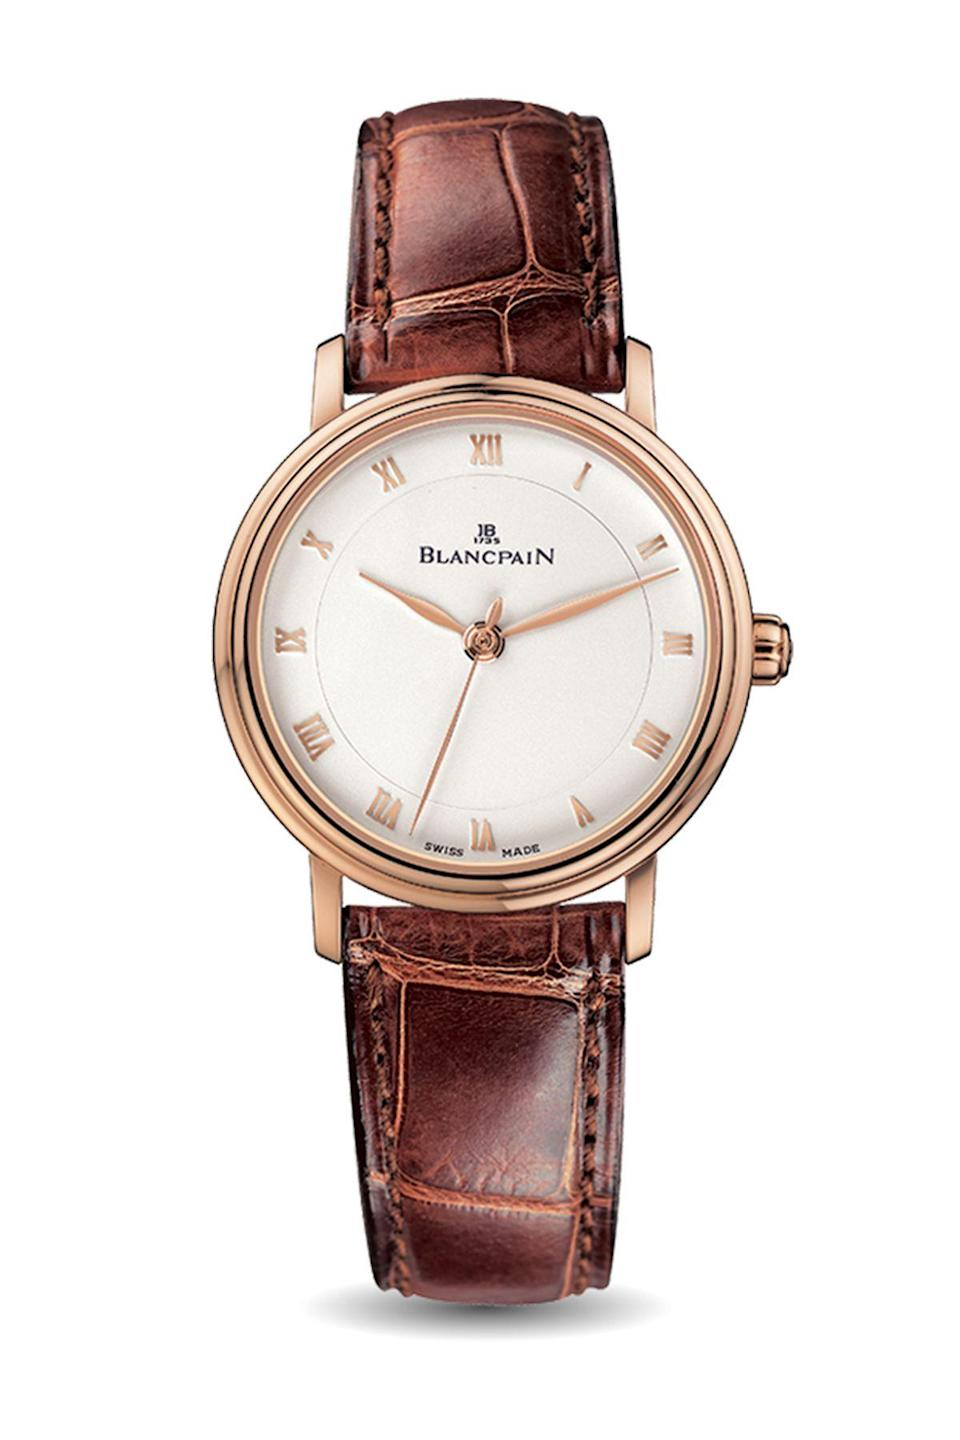 """<p><strong>Blancpain</strong></p><p>blancpain.com</p><p><a href=""""https://www.blancpain.com/en/women/ultraplate-6102-3642-55a"""" rel=""""nofollow noopener"""" target=""""_blank"""" data-ylk=""""slk:Shop Now"""" class=""""link rapid-noclick-resp"""">Shop Now</a></p><p>If you're not fully committed to rose gold, this take on the metal is ultra subtle. </p>"""